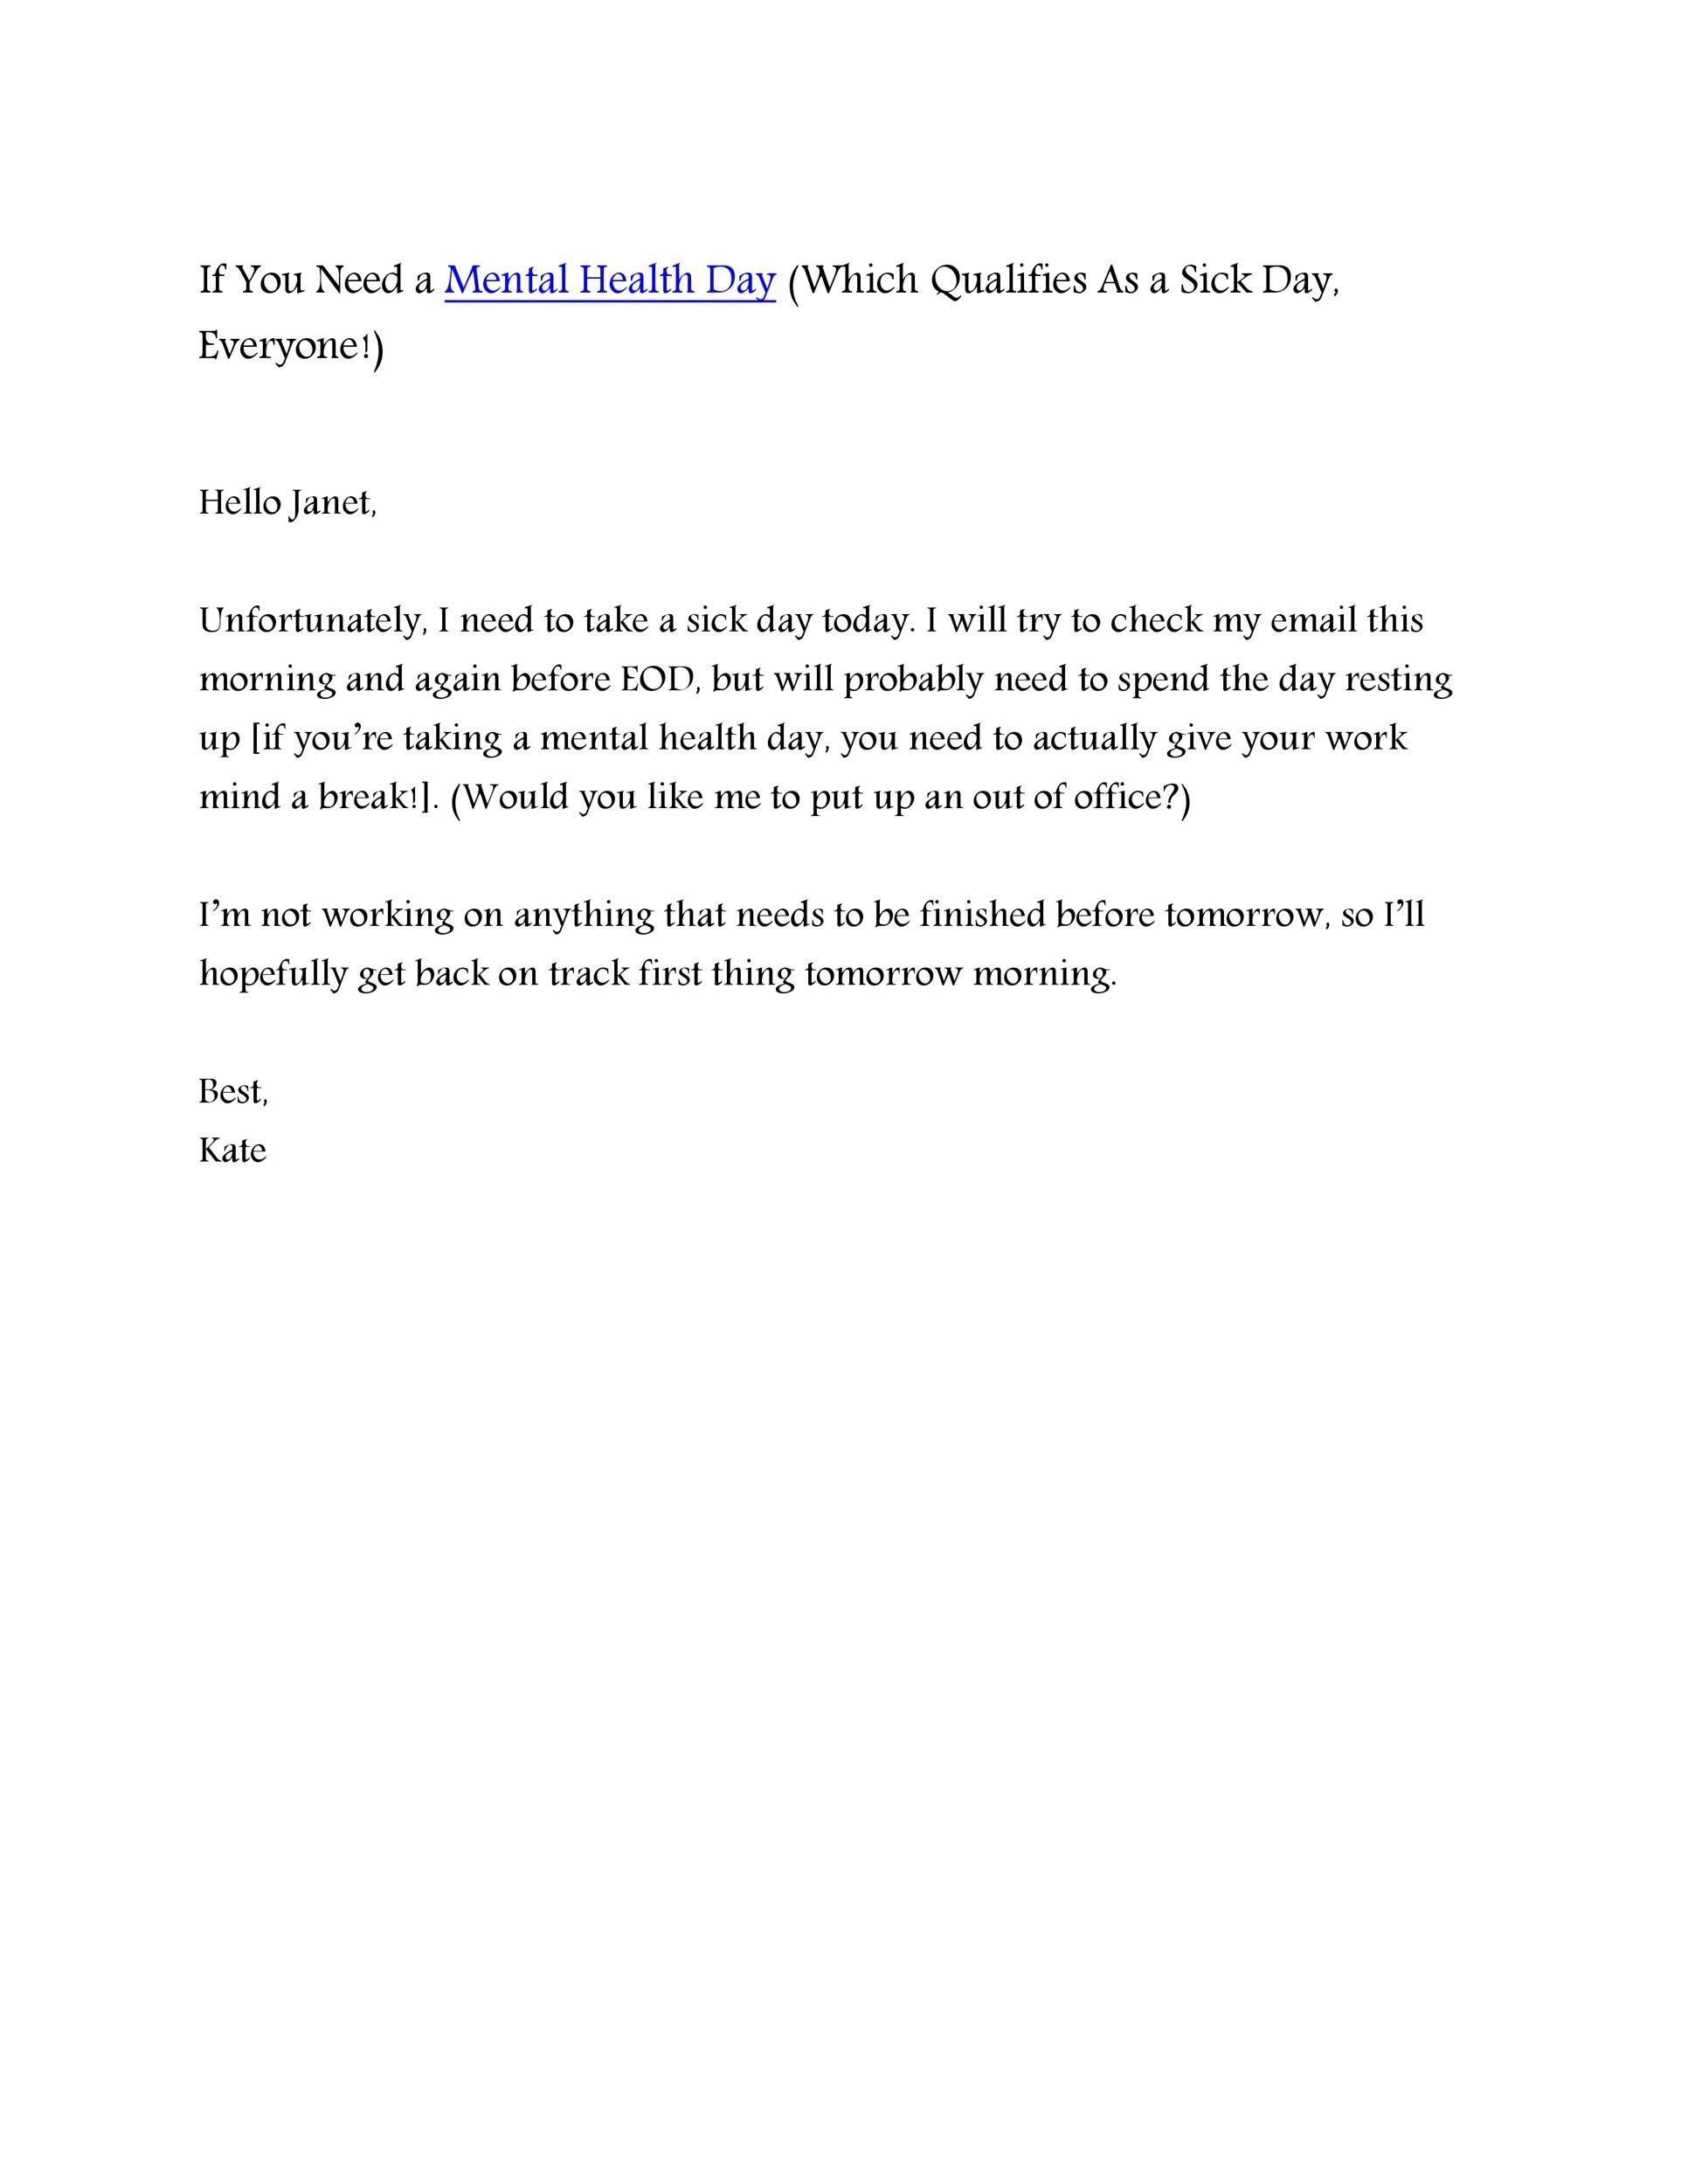 Free sick leave email 17